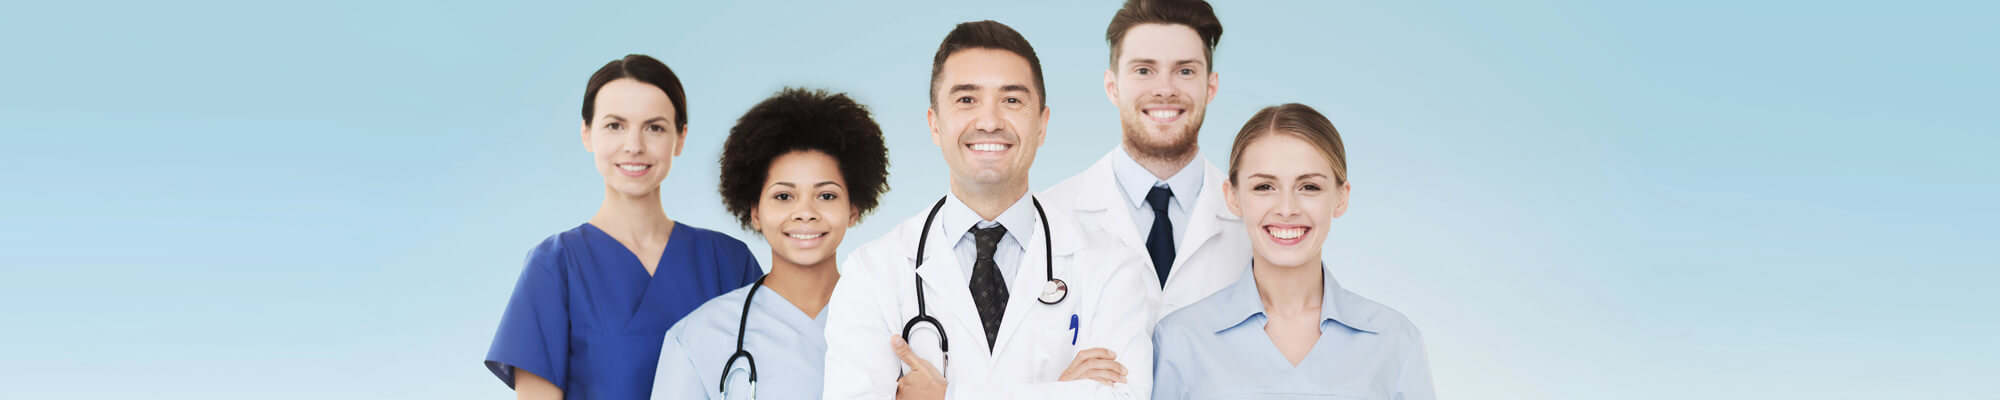 resumes for healthcare professionals and nurses